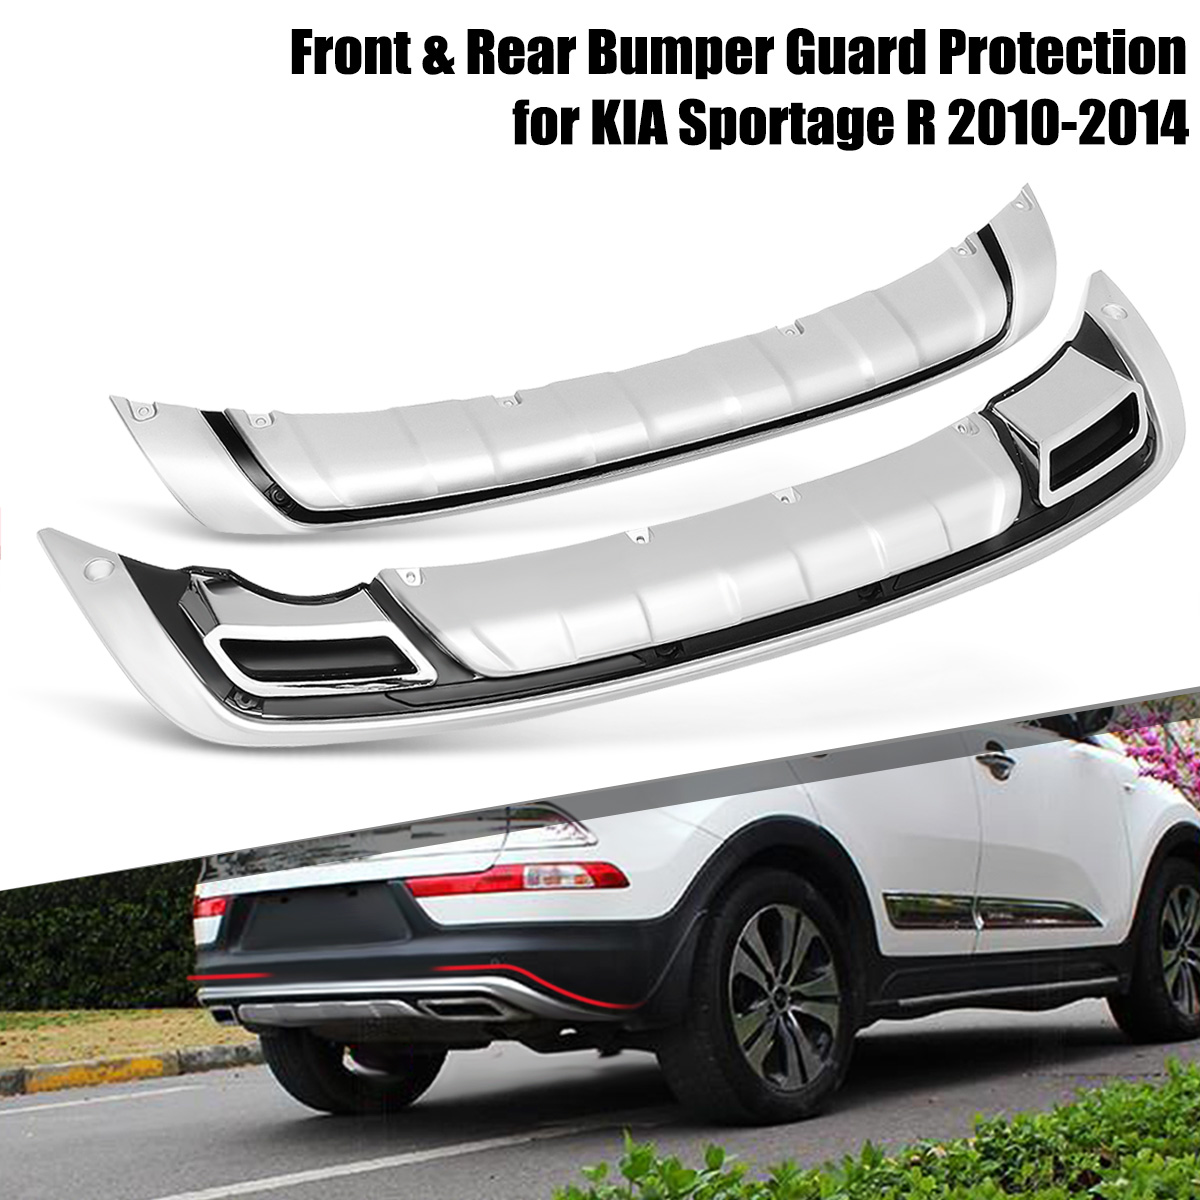 2Pcs/Set Car Front And Rear Bumper Bumpers Protector Protection Cover Guard ABS For KIA Sportage R 2010 2011 2012 2013 2014